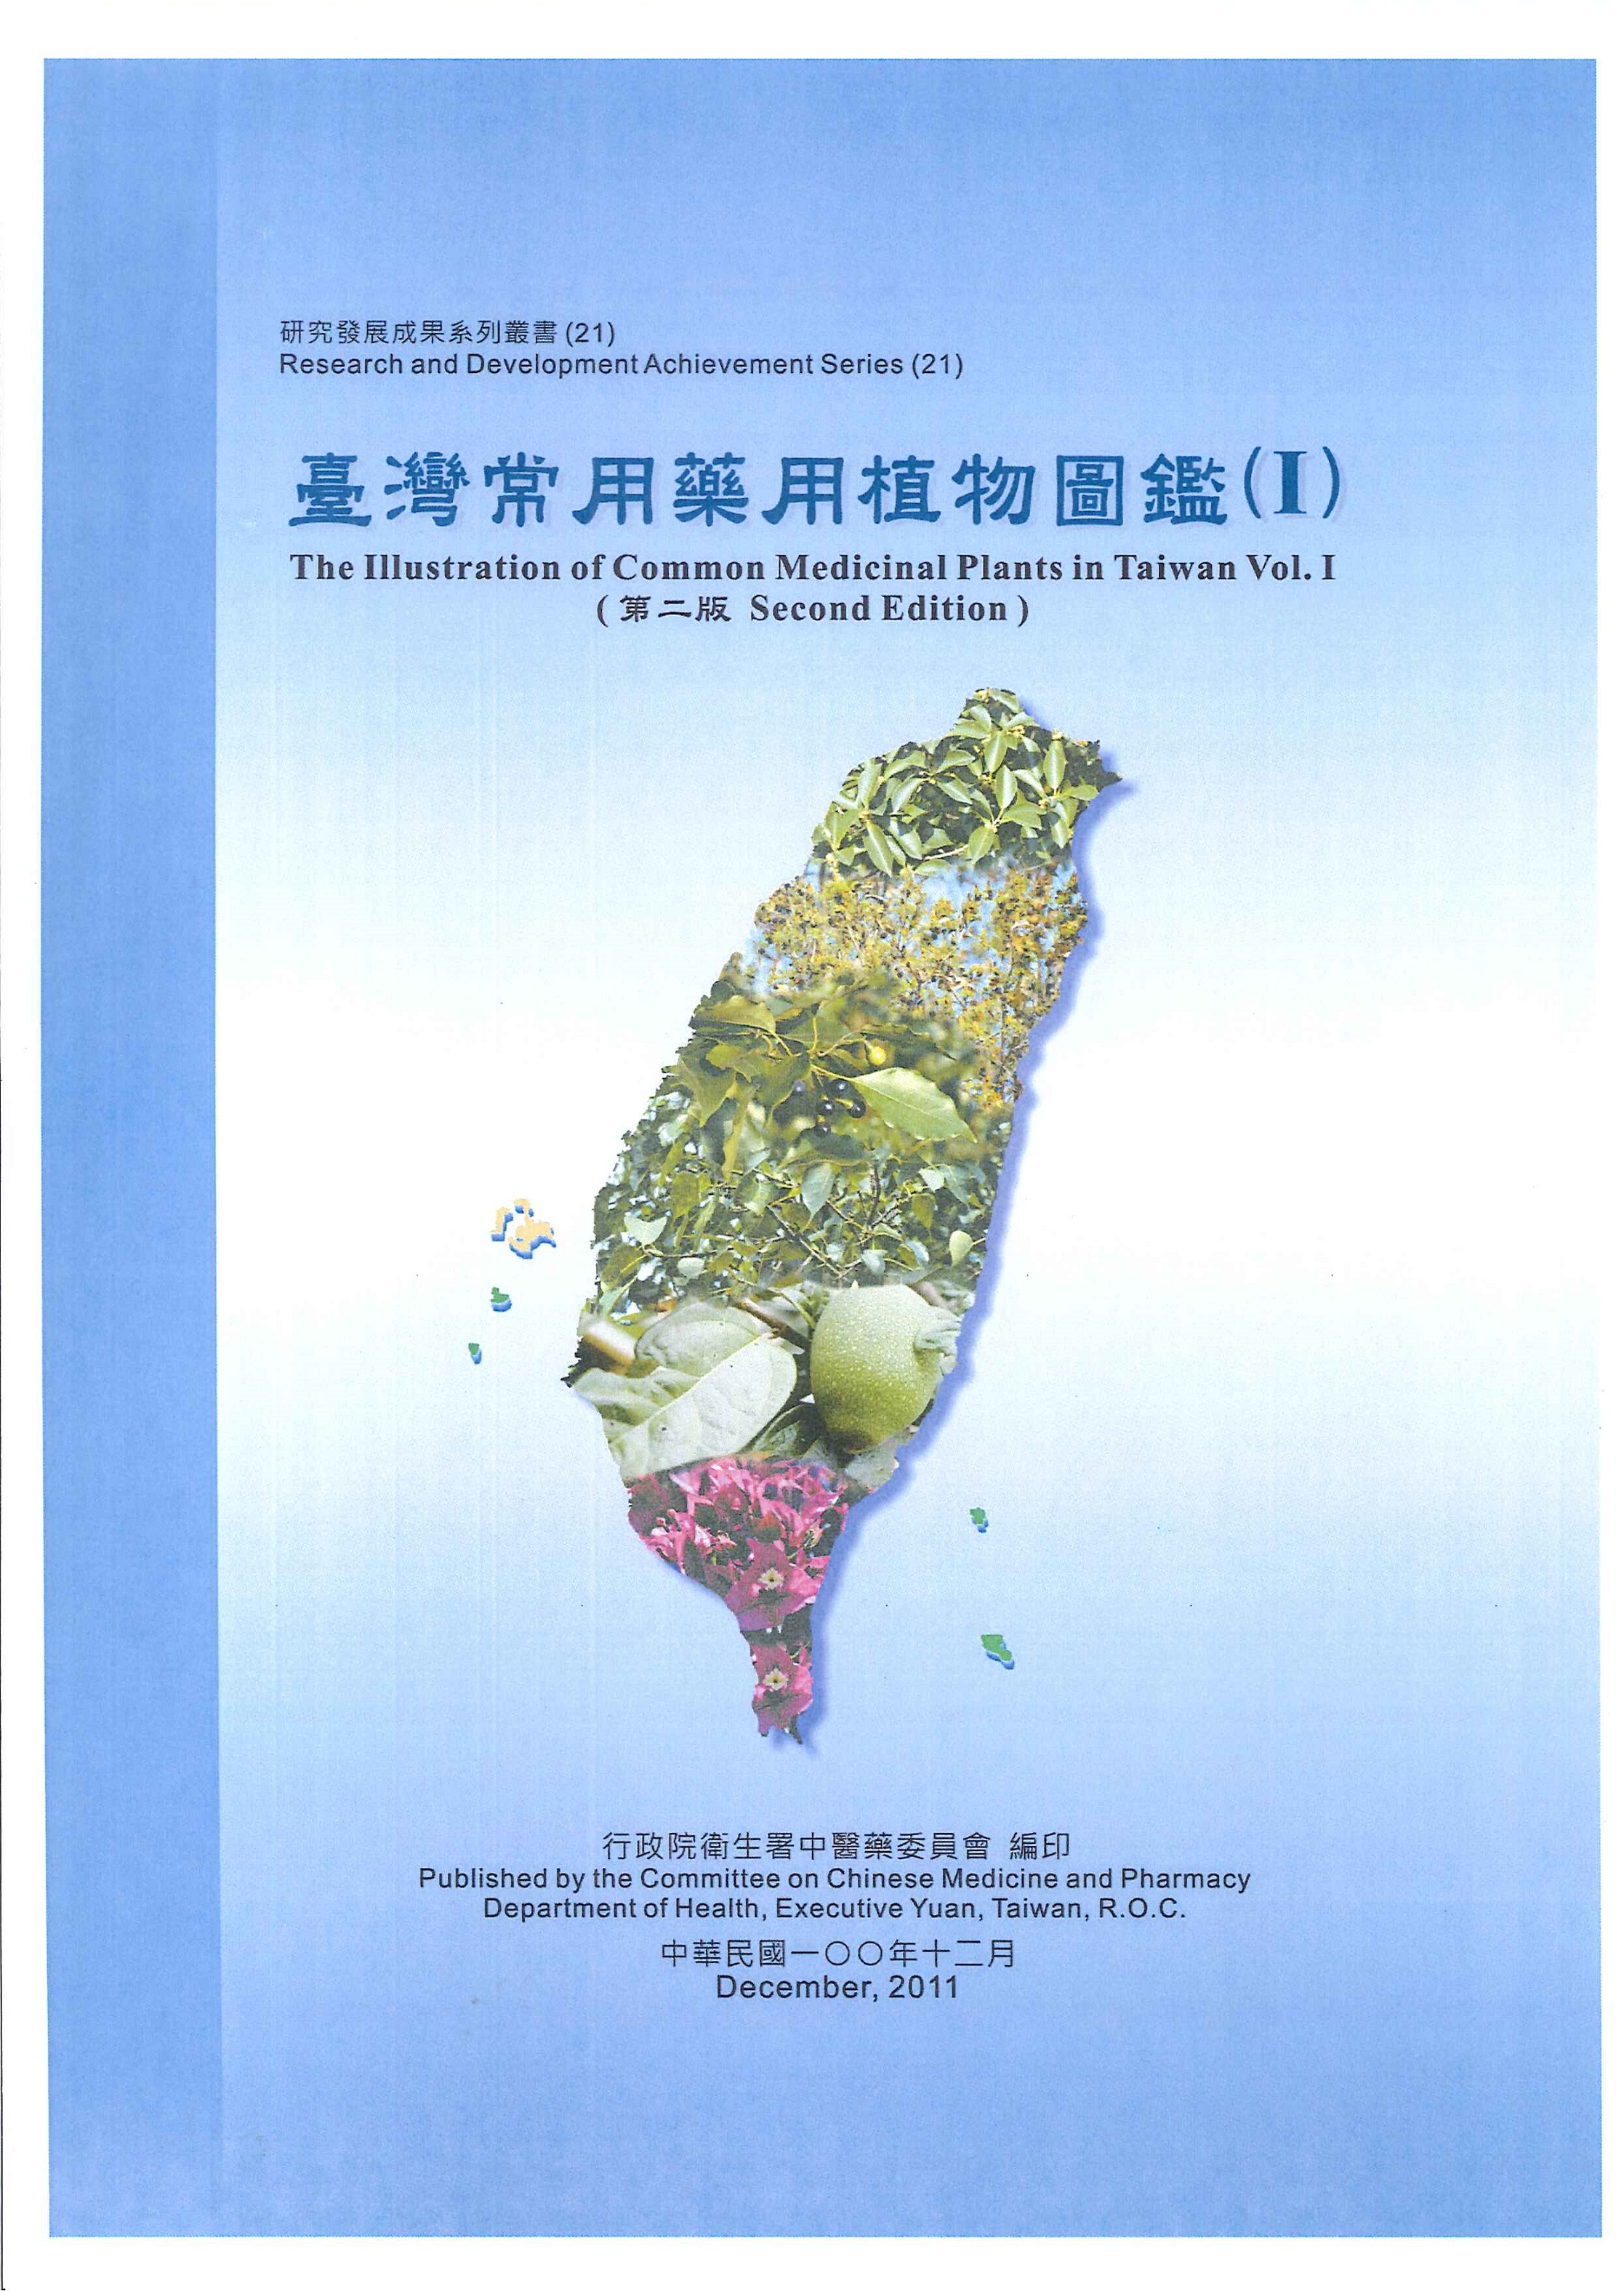 台灣常用藥用植物圖鑑 [電子書]=The illustration of common medicinal plants in Taiwan